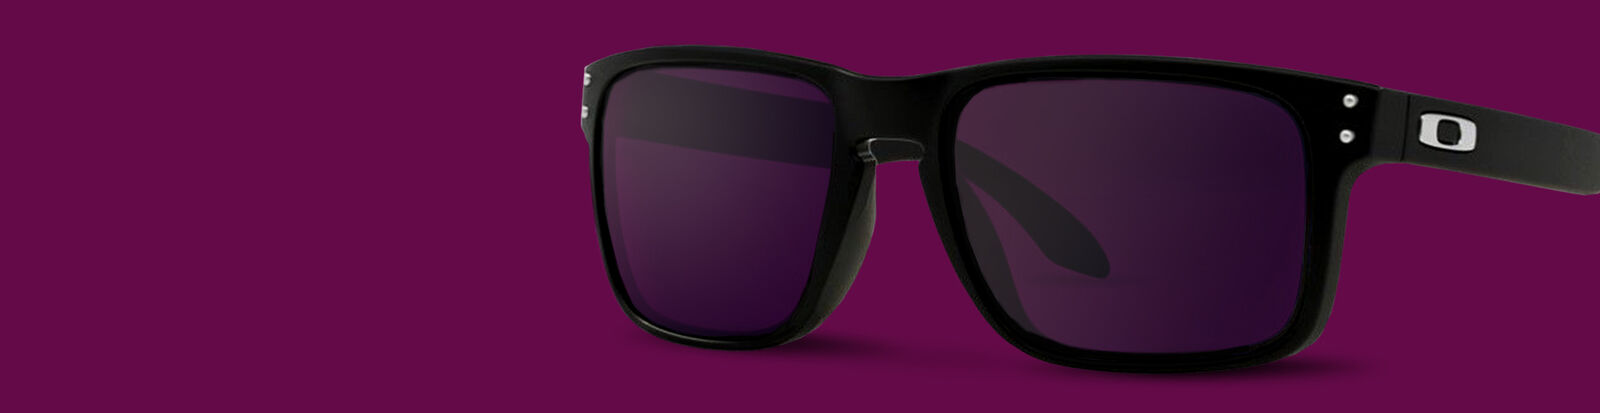 Oakley Shades $69.99 and Under. Save now.